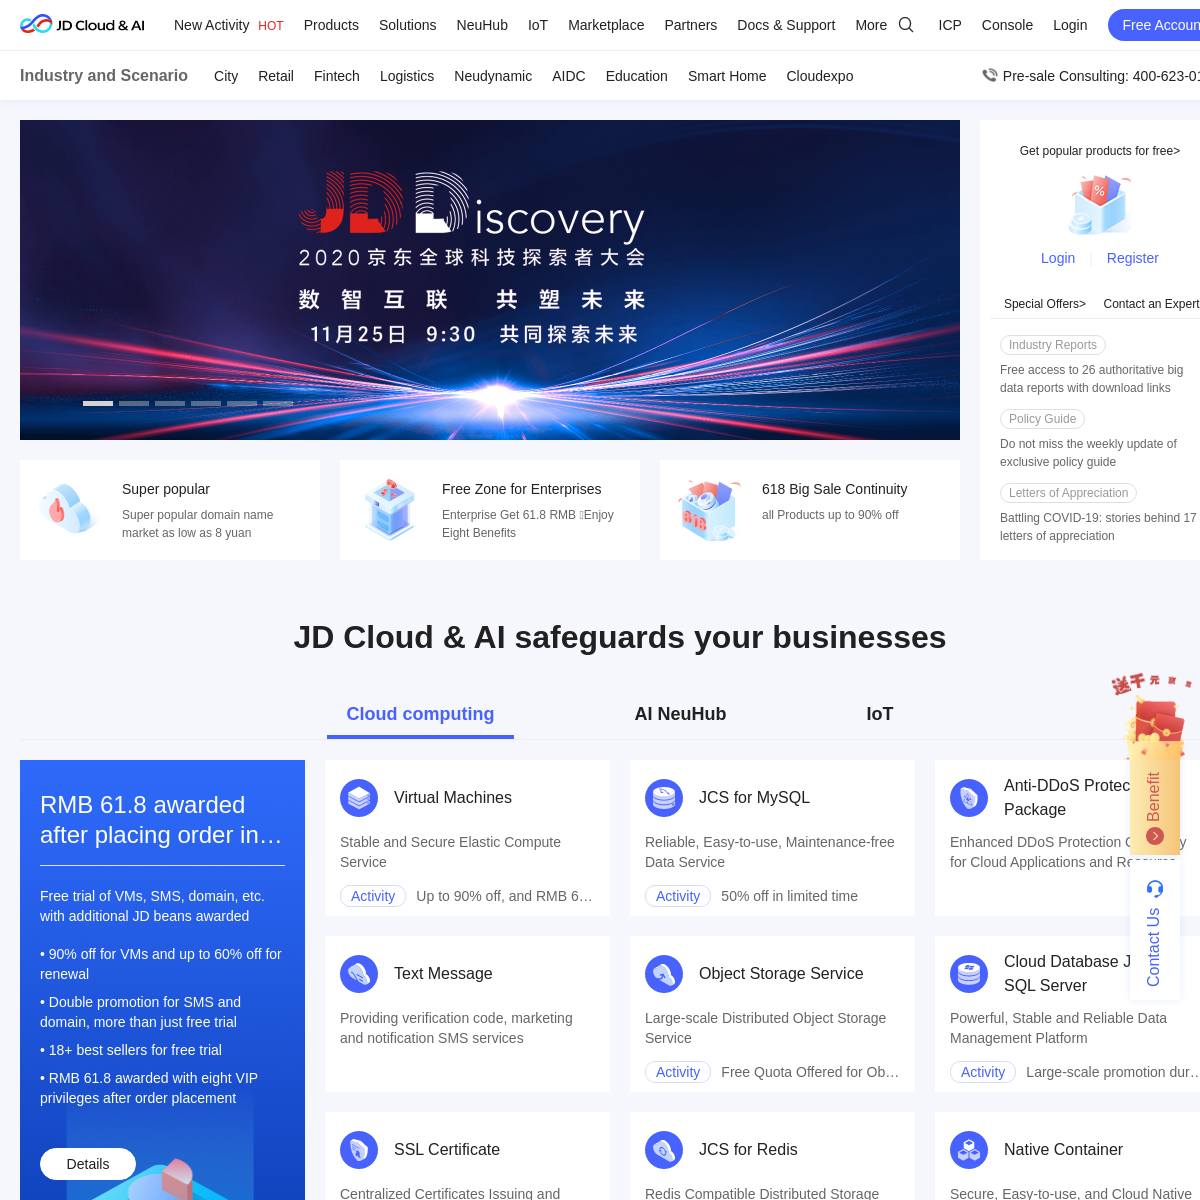 JD Cloud & AI, Connecting the World